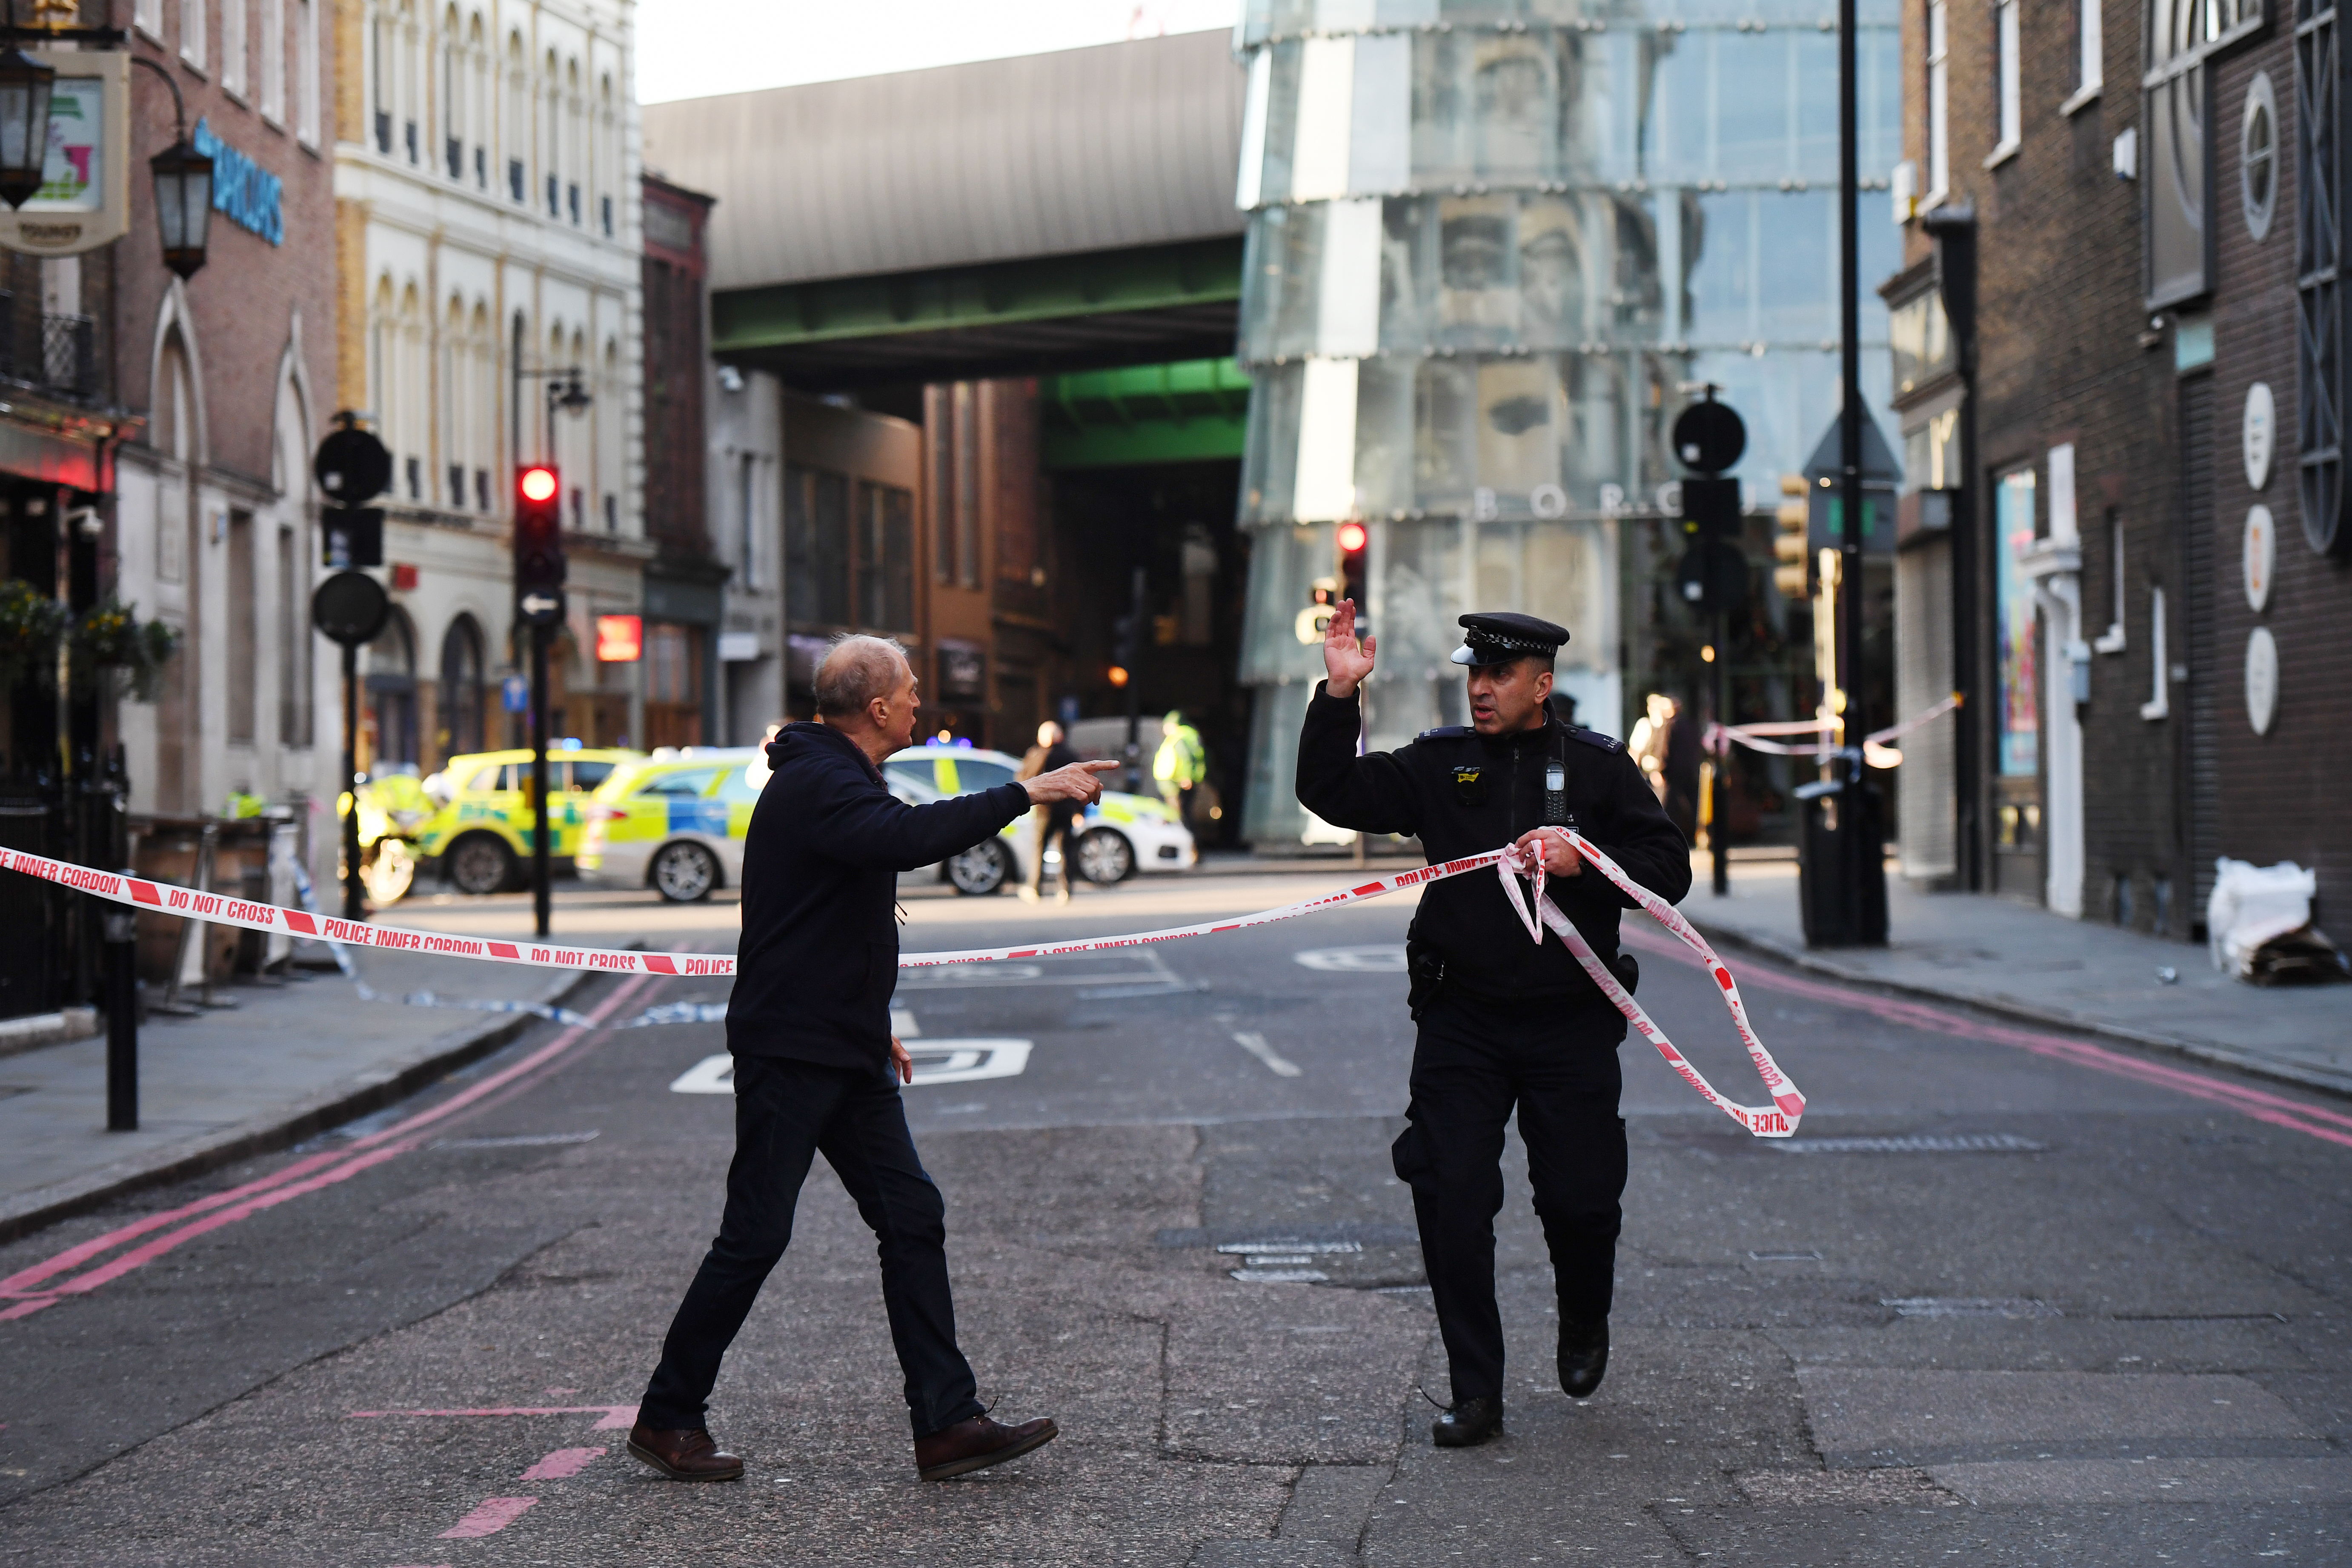 Members of the public are held behind a police cordon near London Bridge train station after reports of shots being fired on London Bridge on November 29 in London. (Chris J Ratcliffe/Getty Images)